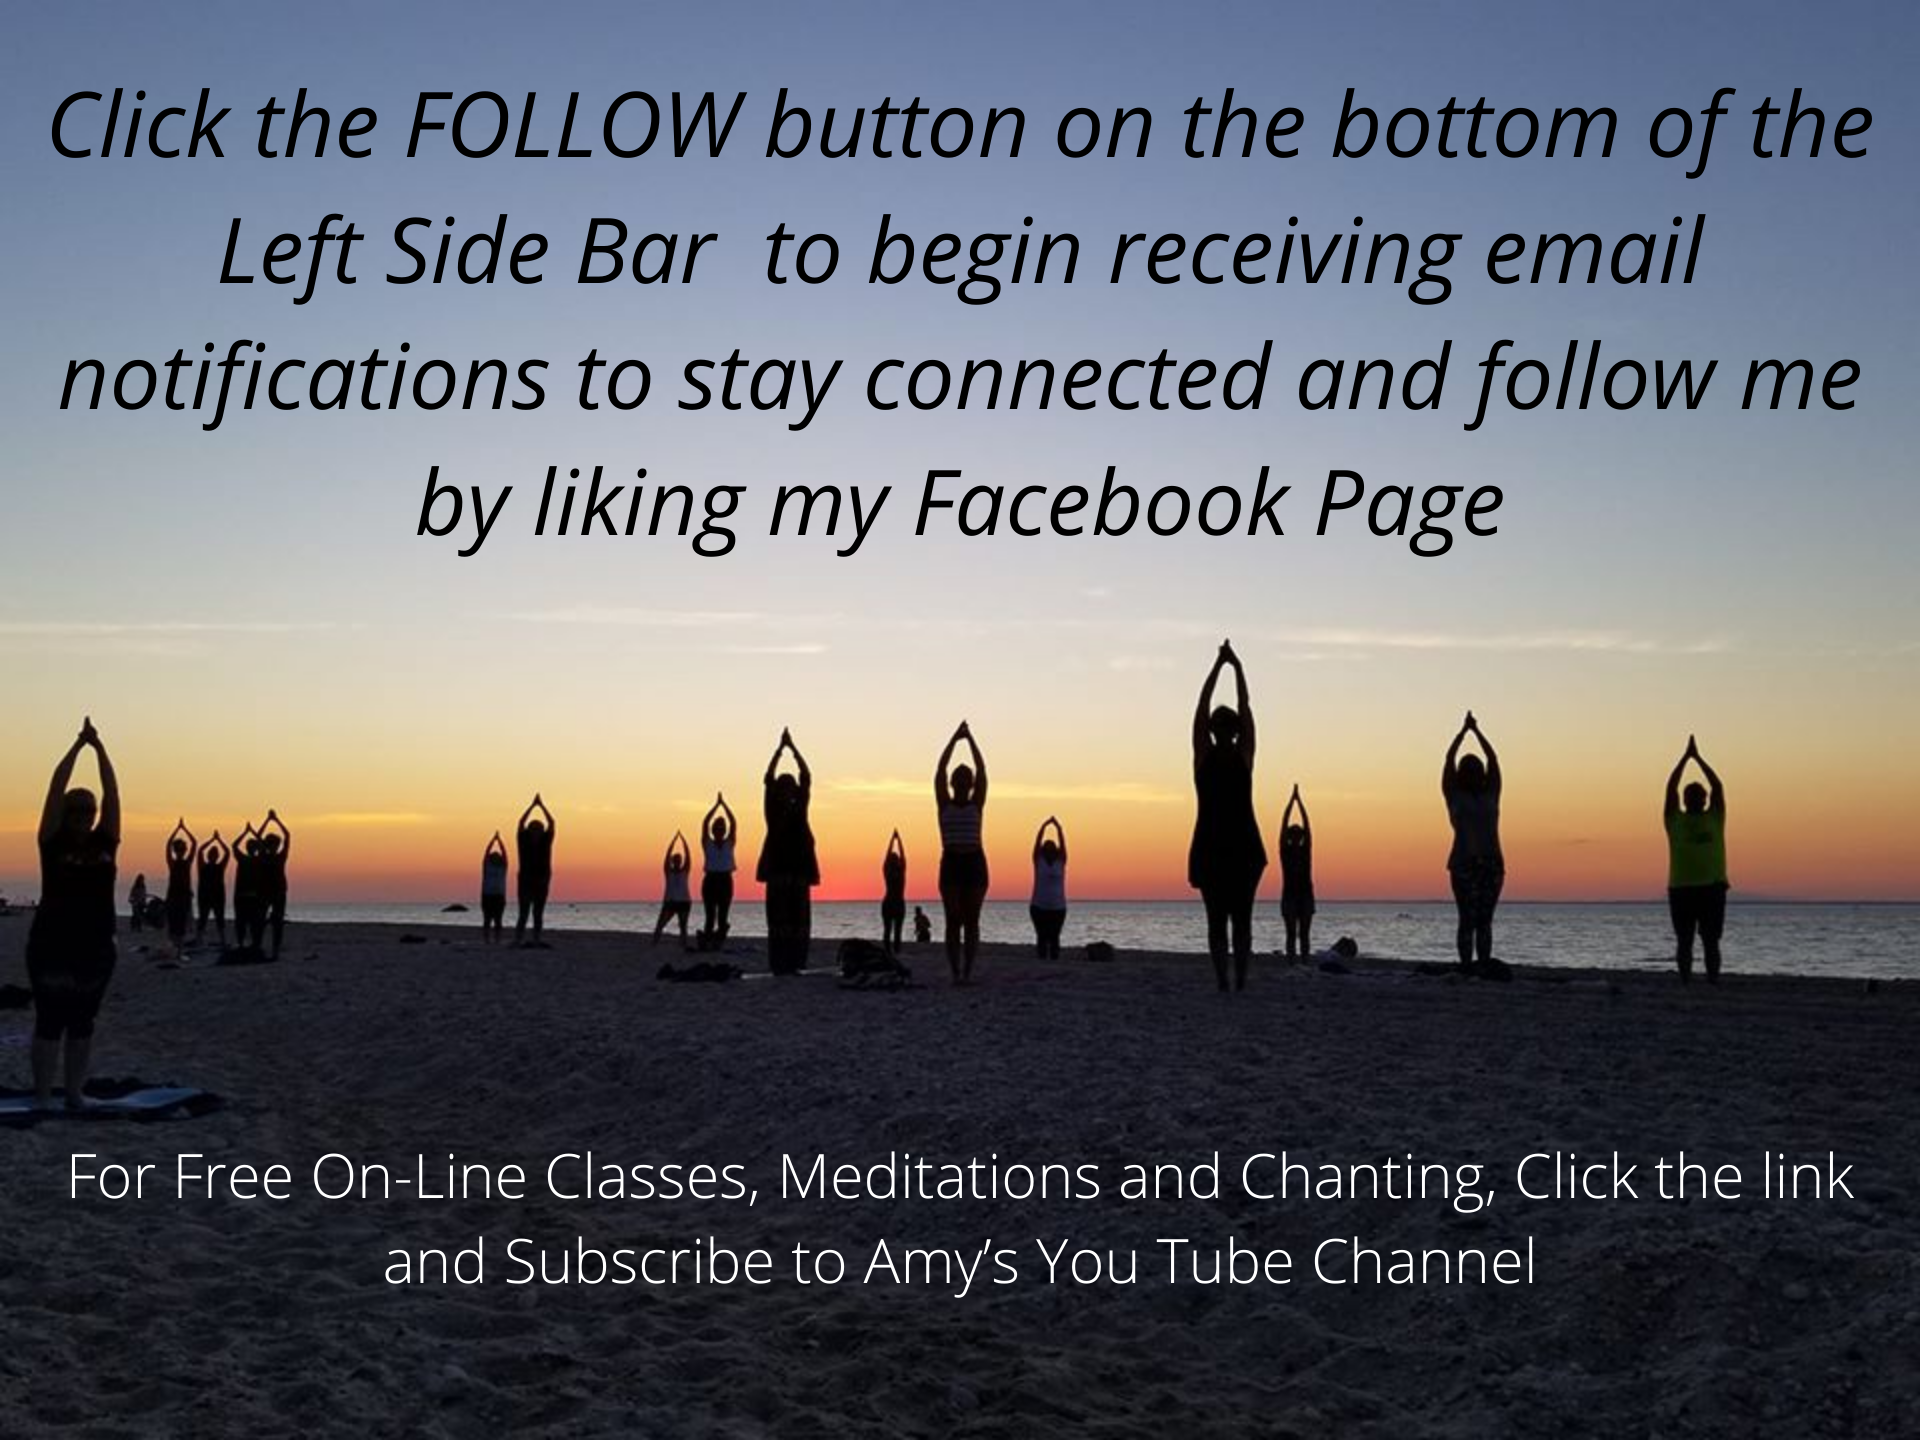 Click the FOLLOW button on the bottom of the Left Side Bar to begin receiving email notifications to stay connected and follow me by liking my Facebook Page